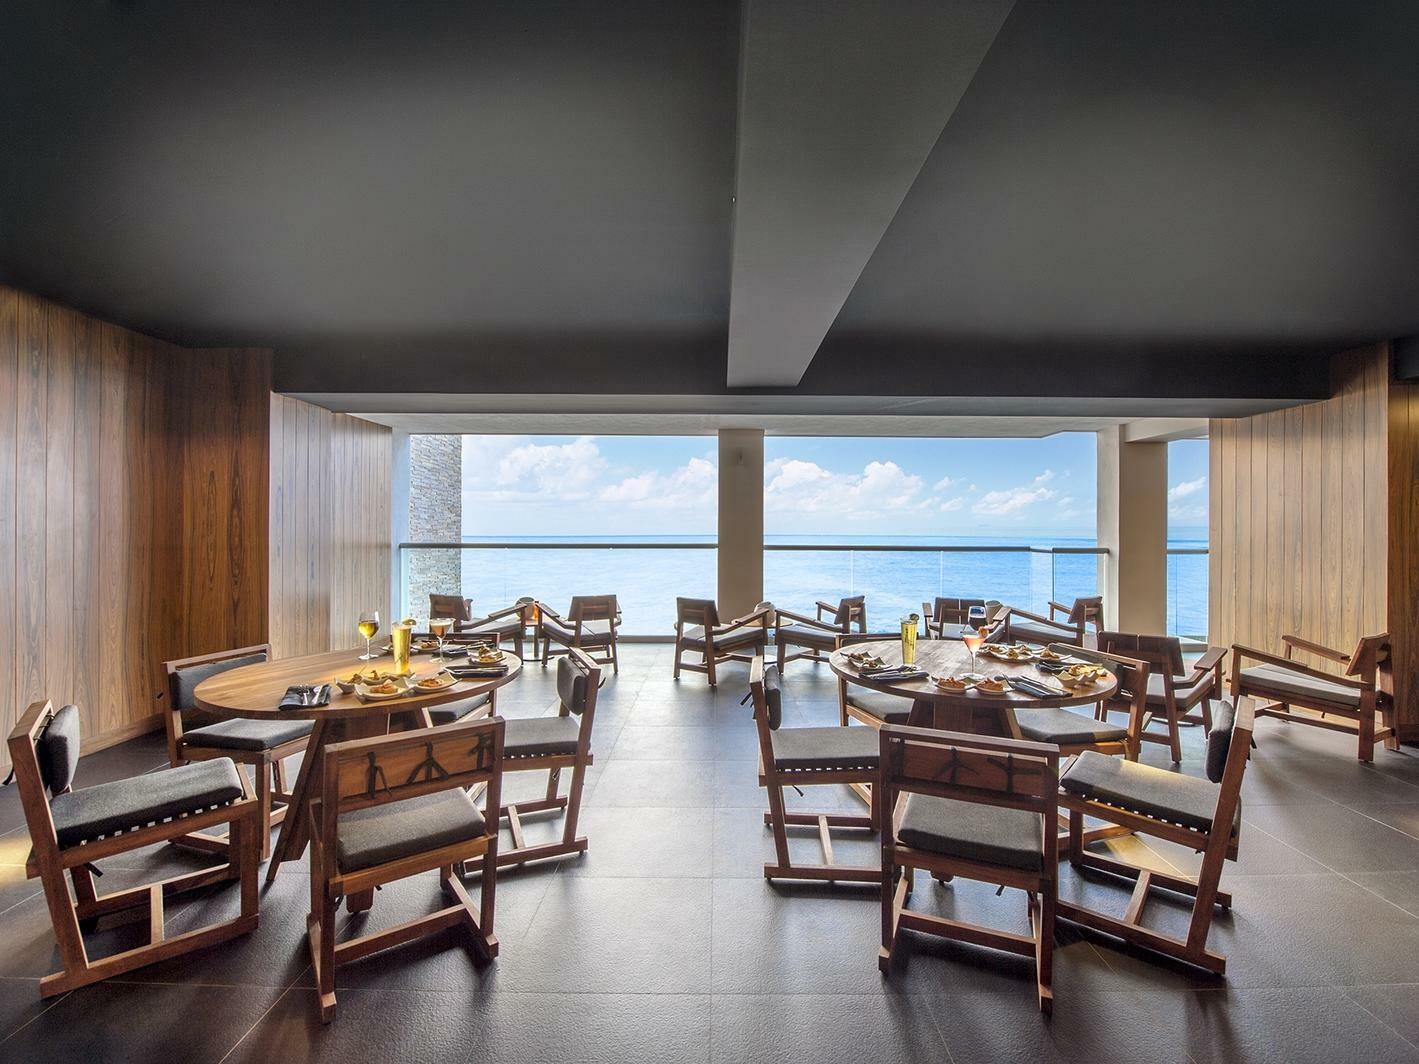 restaurant dining room with ocean view